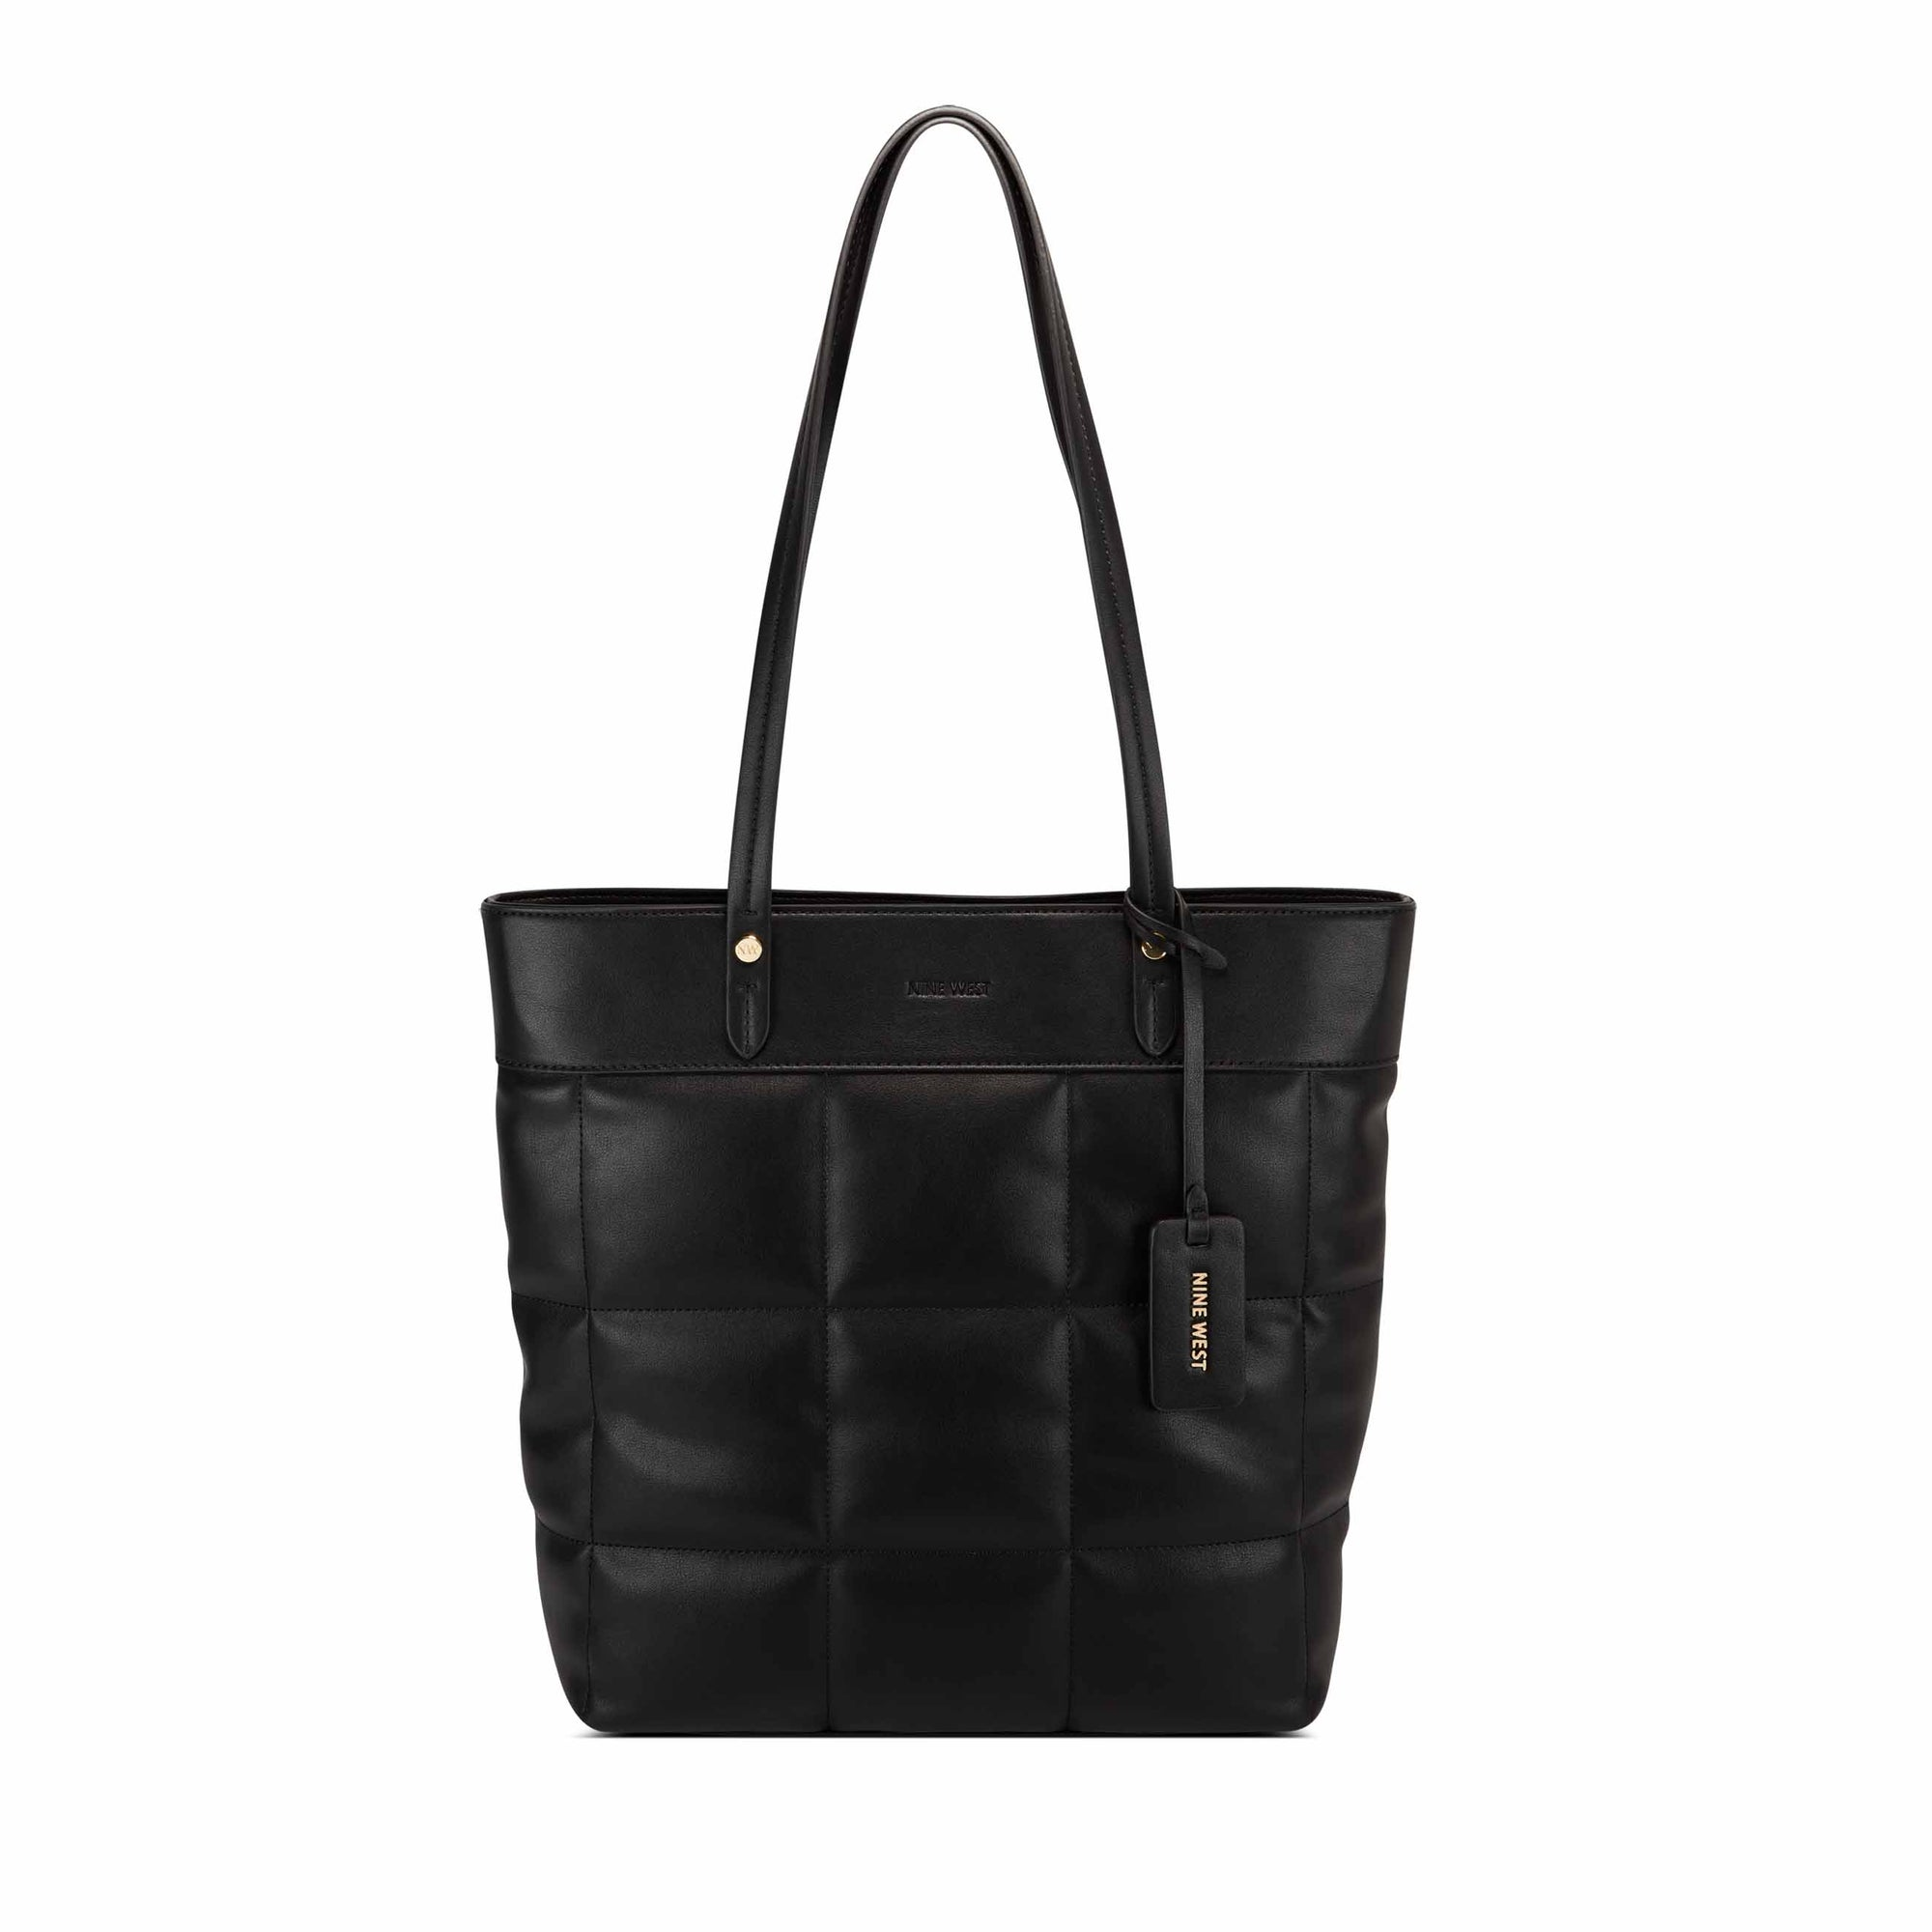 Valda Medium Tote